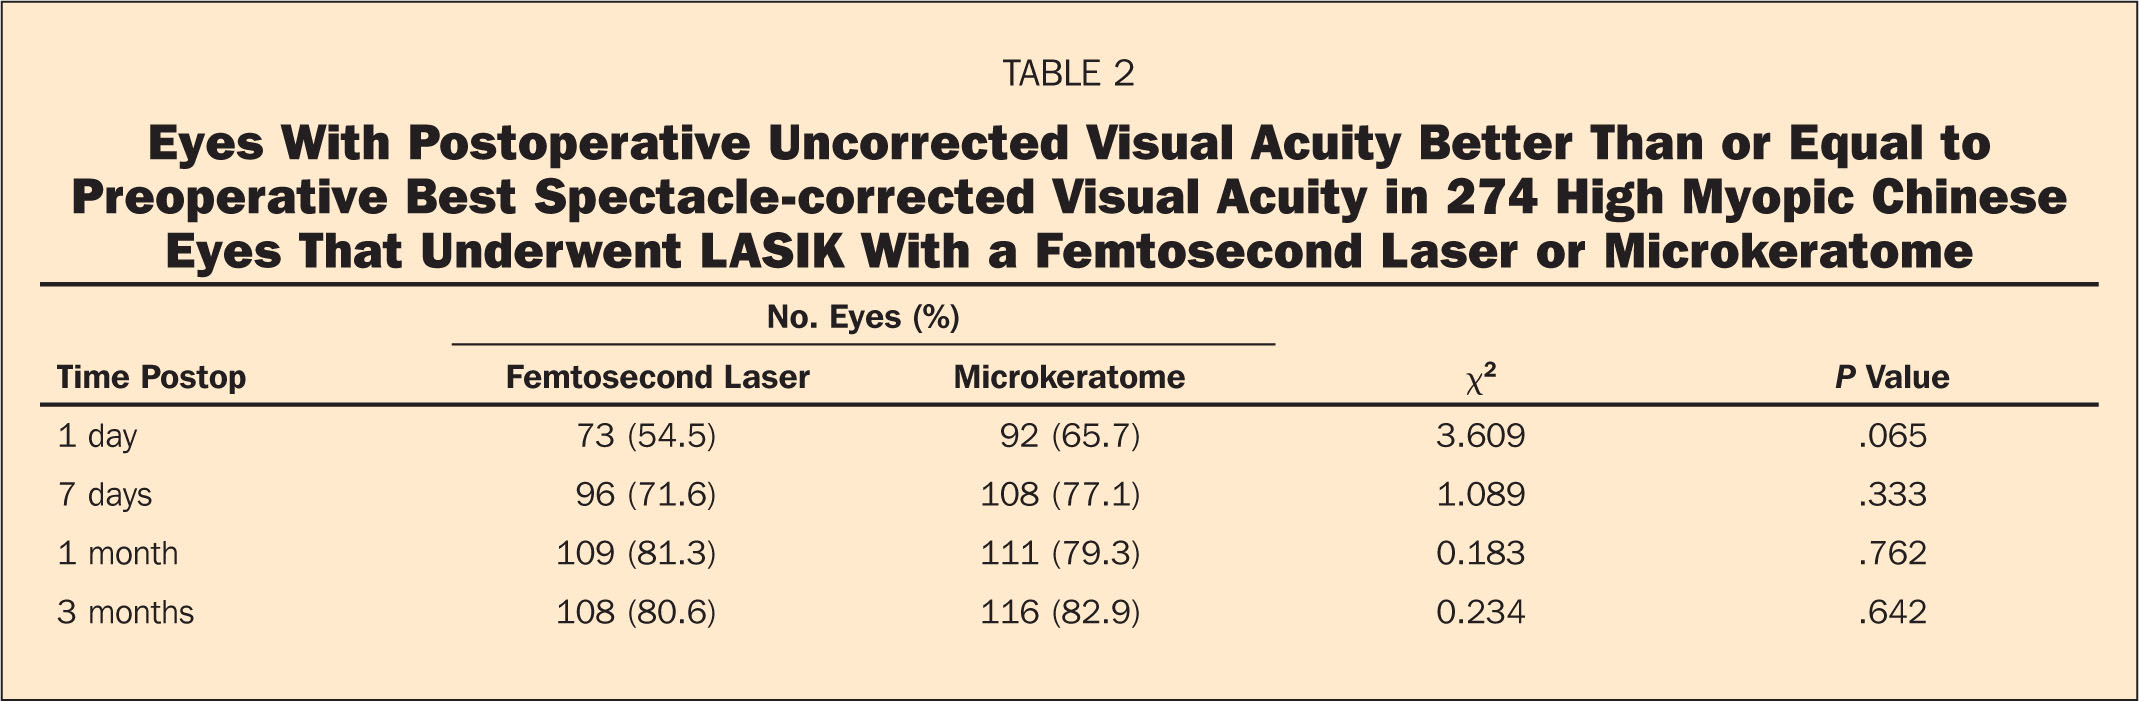 Eyes with Postoperative Uncorrected Visual Acuity Better than or Equal to Preoperative Best Spectacle-Corrected Visual Acuity in 274 High Myopic Chinese Eyes that Underwent LASIK with a Femtosecond Laser or Microkeratome